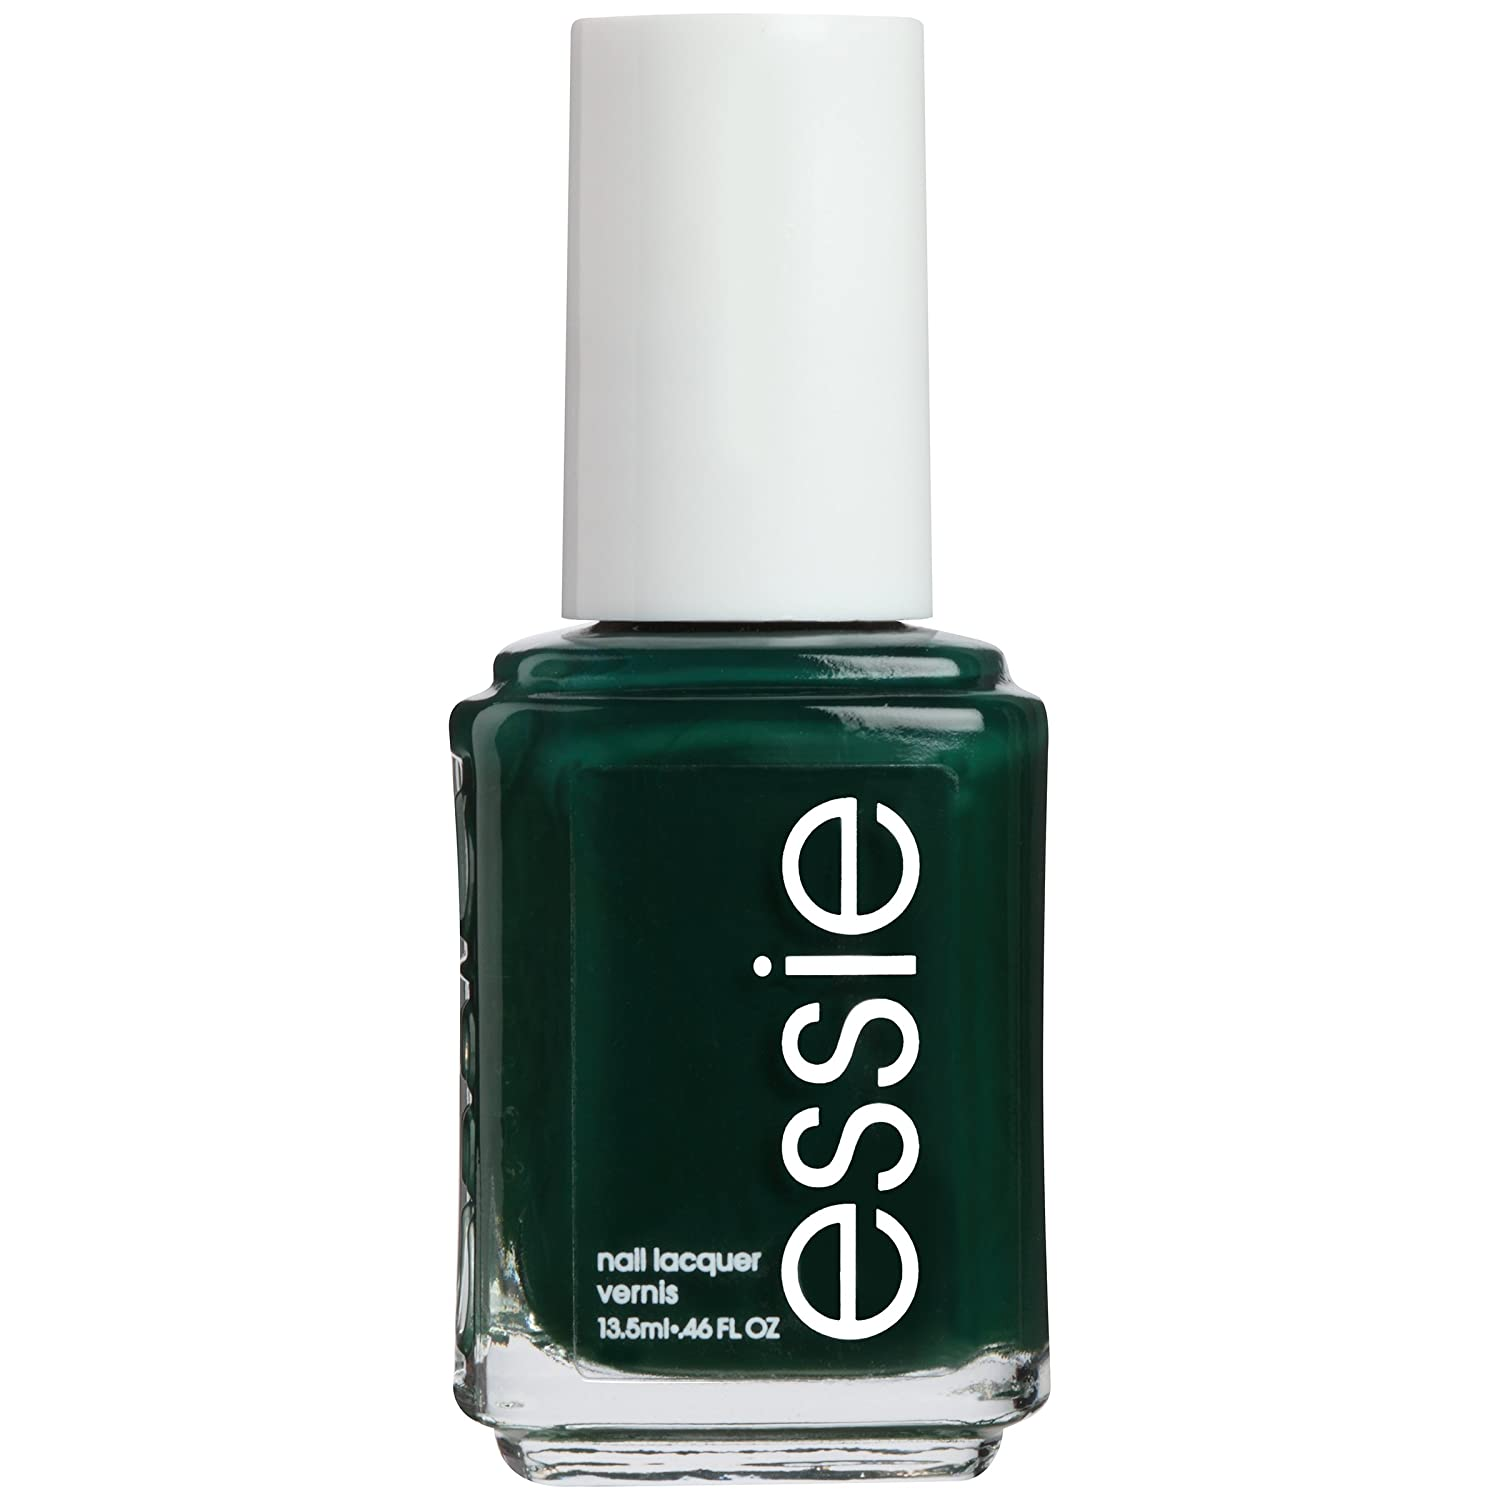 Amazon.com : essie nail polish, off tropic, green nail polish, 0.46 ...